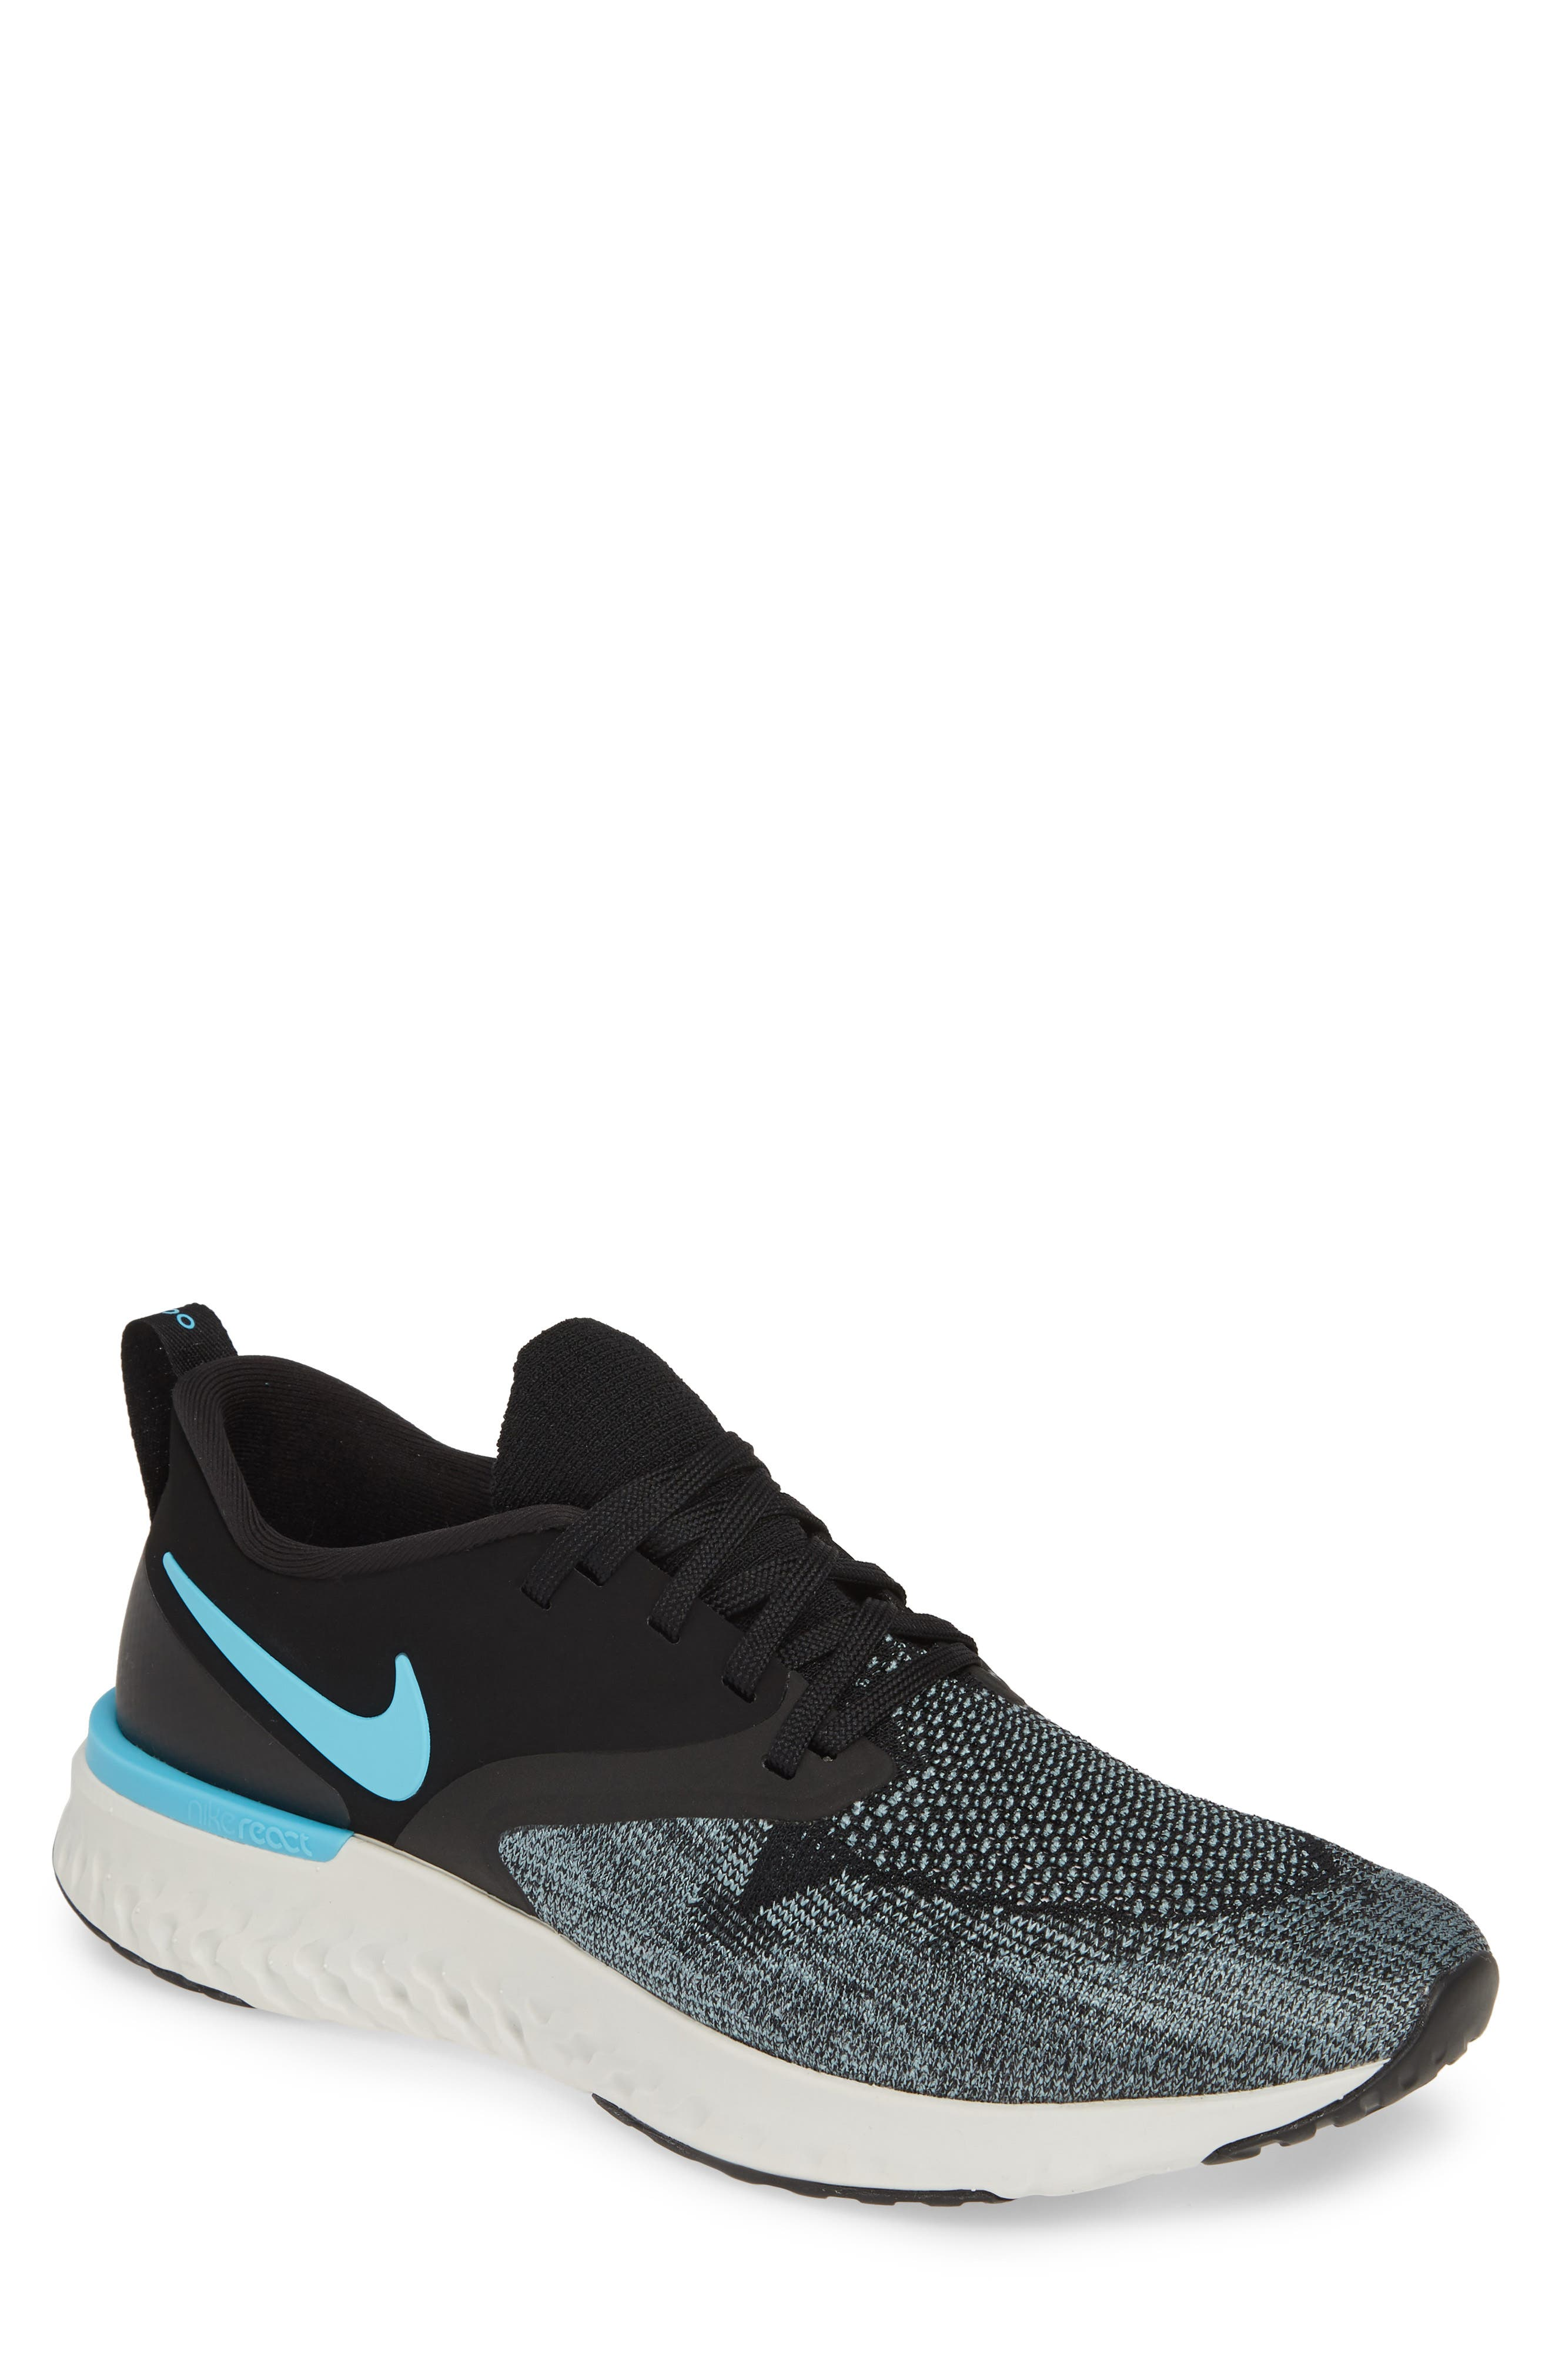 NIKE Odyssey React 2 Flyknit Running Shoe, Main, color, BLACK/ BLUE FURY/ AVIATOR GREY